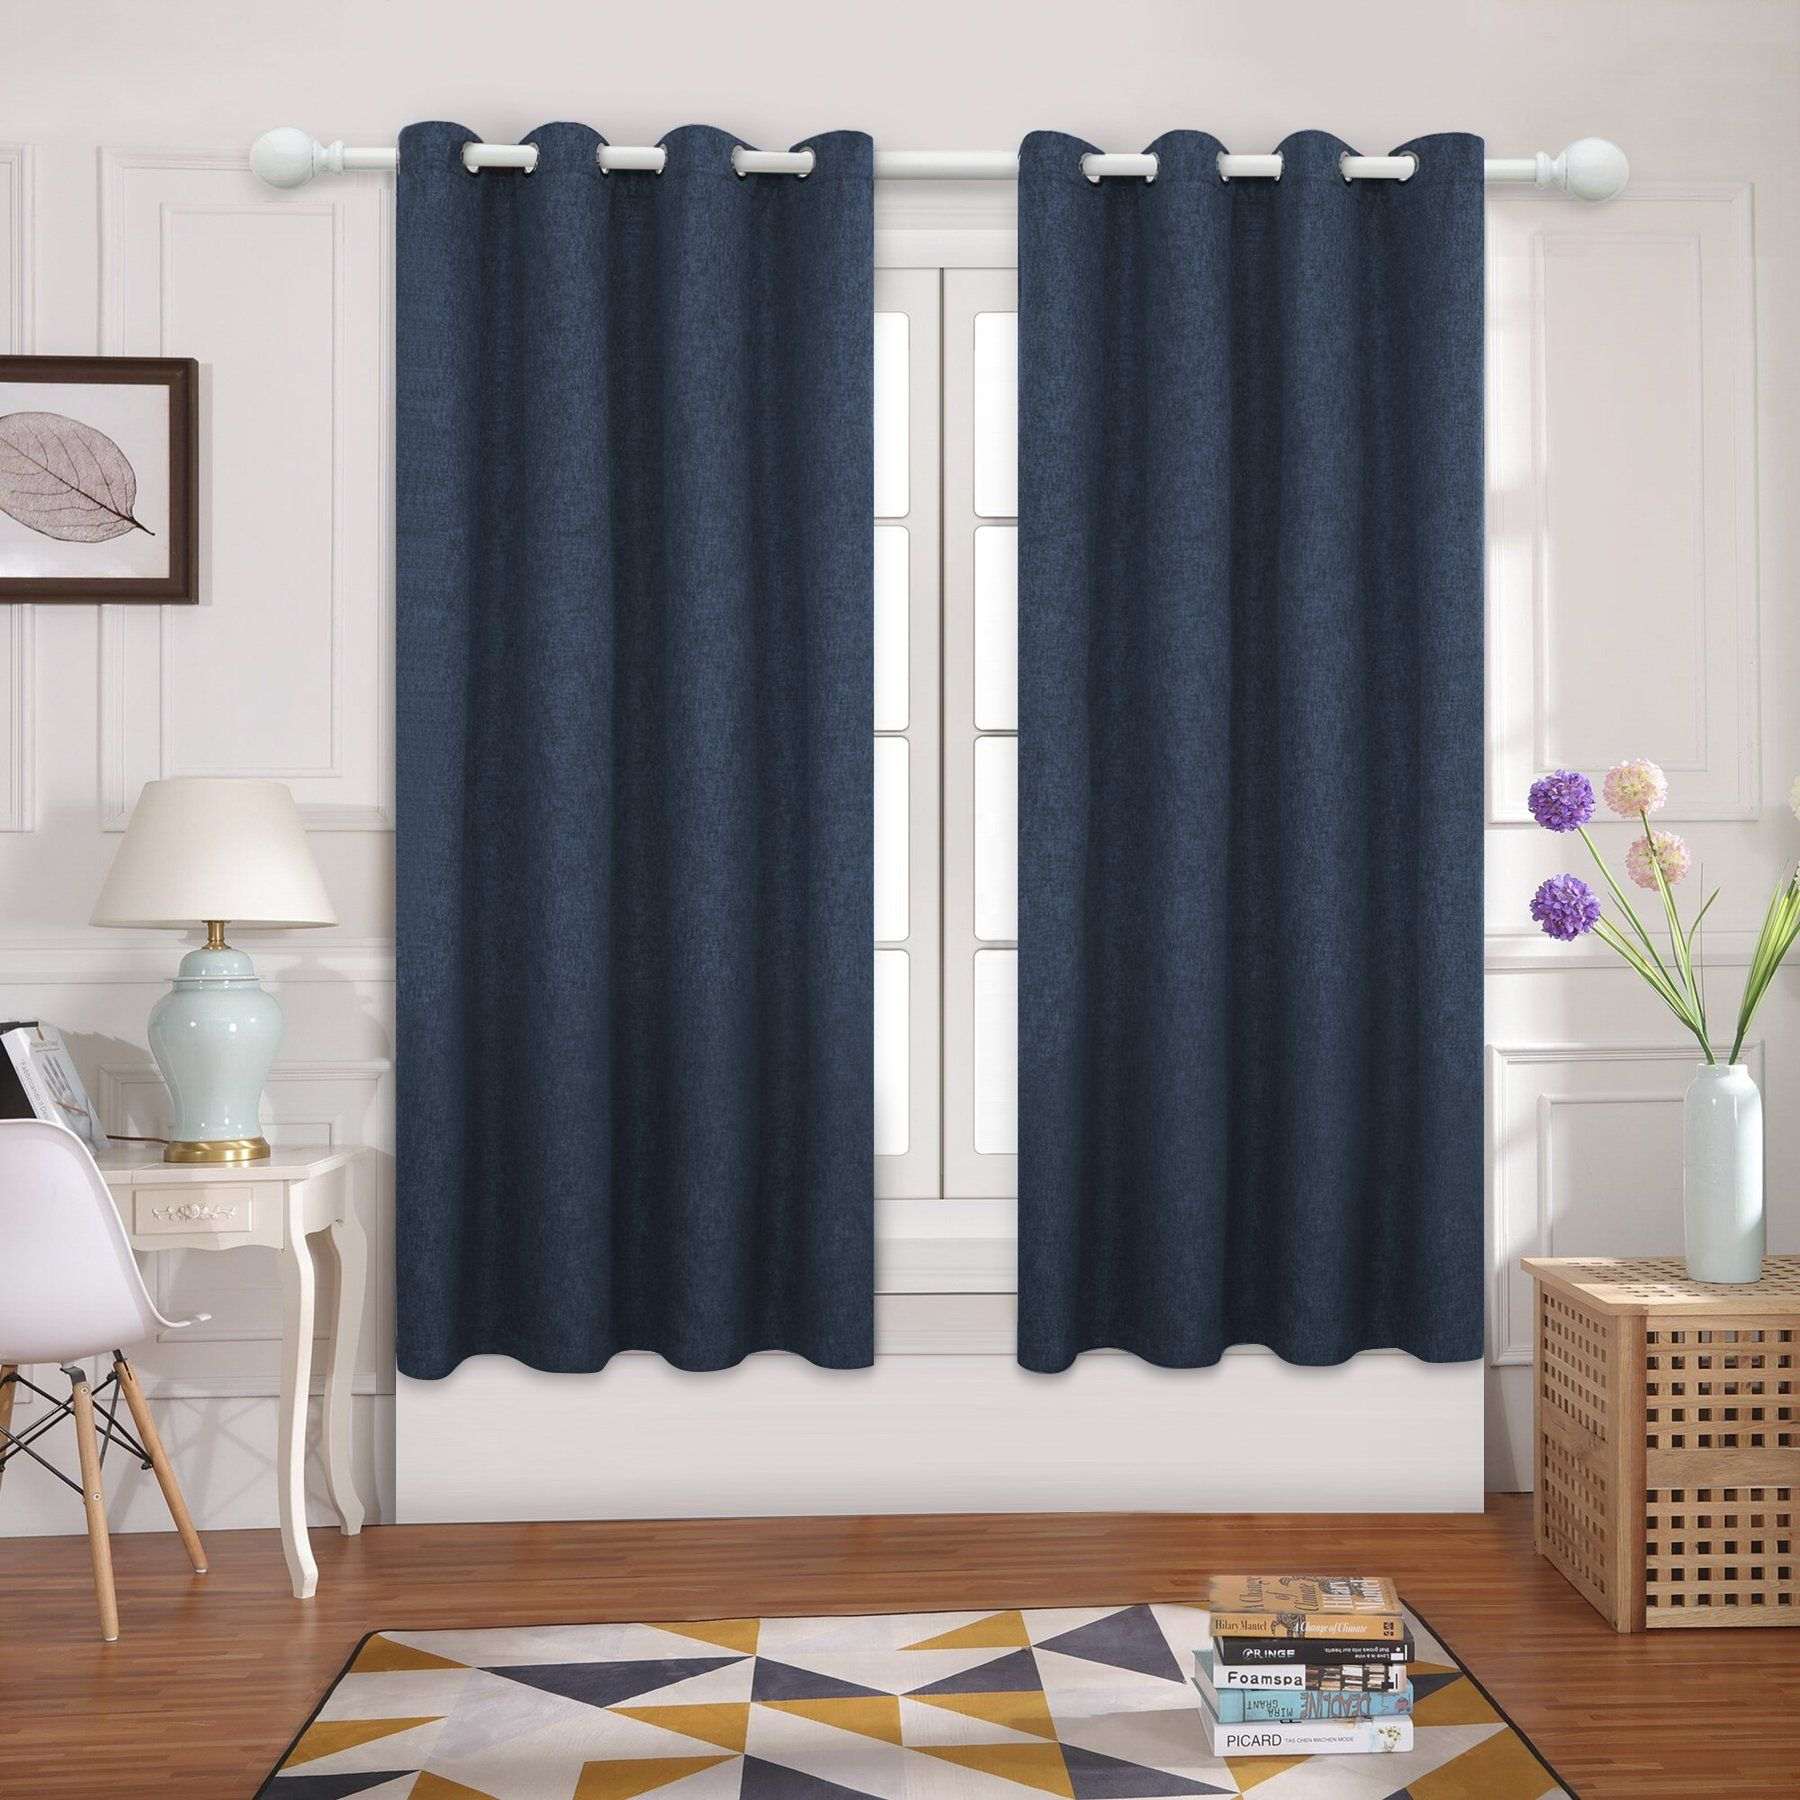 Joywell Blackout Drapes Thermal Insulated Linen Grommet Window Curtains For Living Room And Bedroom In 2 Panels Nav Blackout Drapes Cool Curtains Kids Curtains